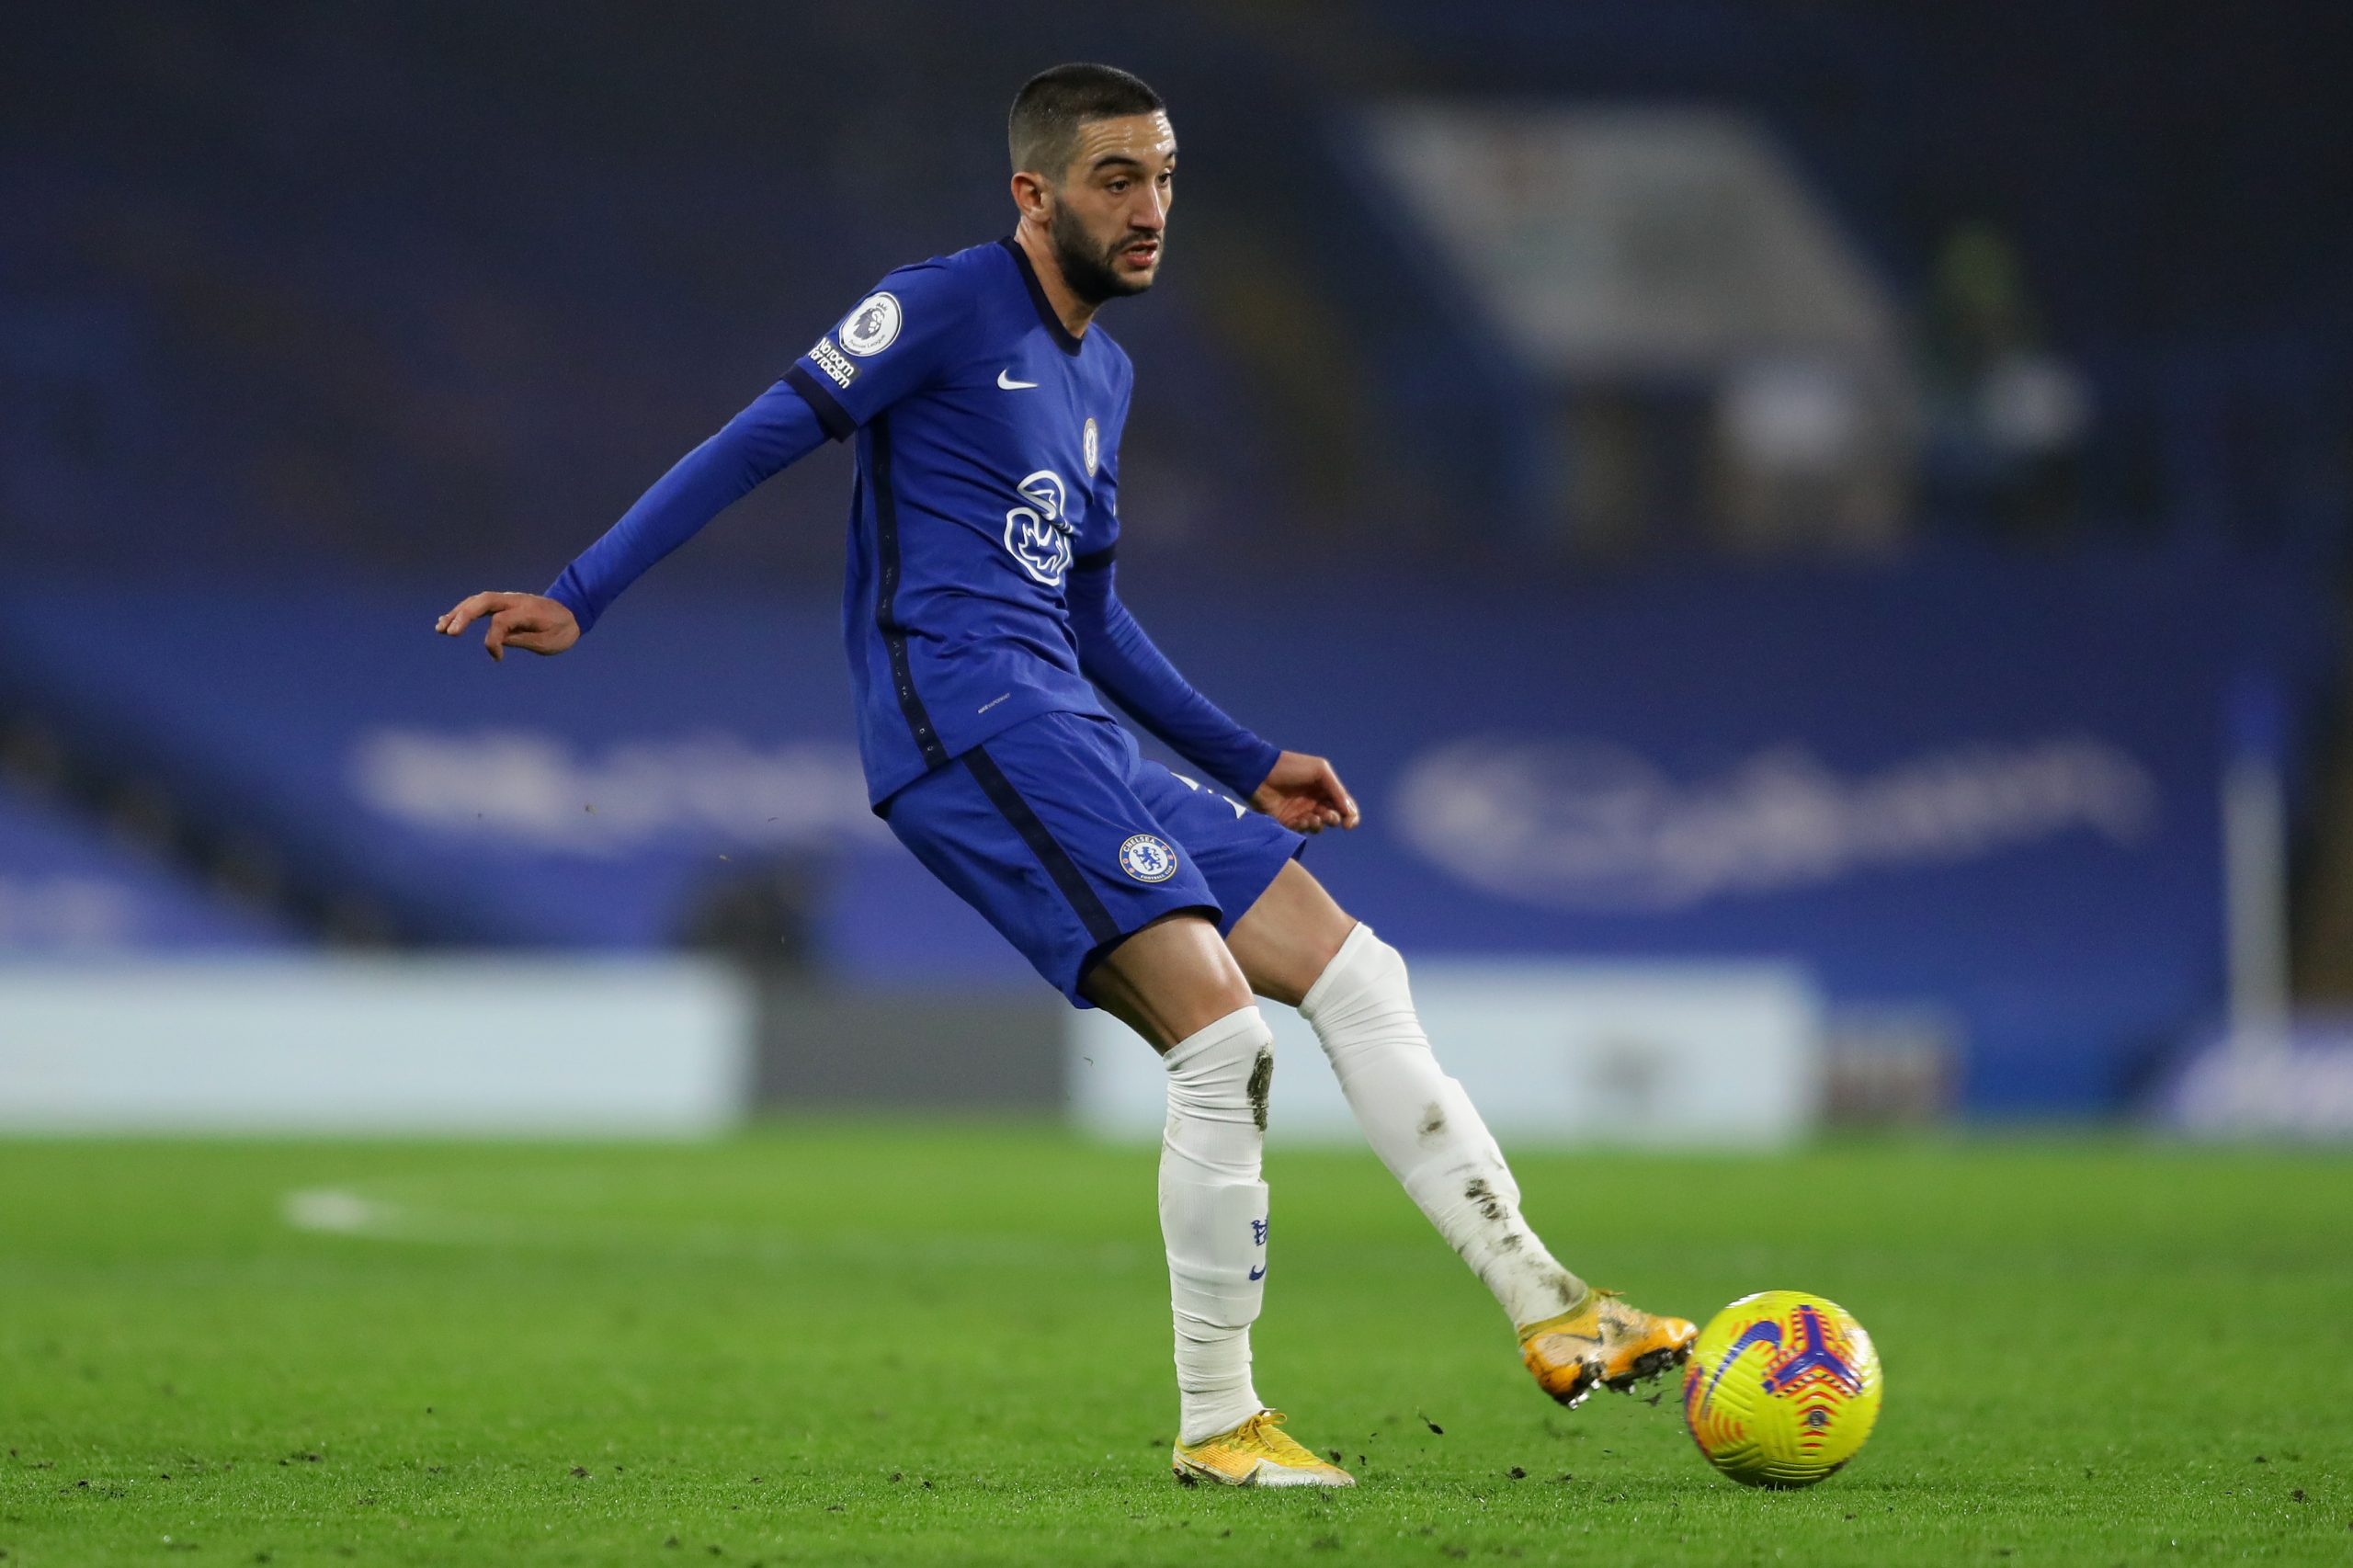 Hakim Ziyech of Chelsea in action during the Premier League match